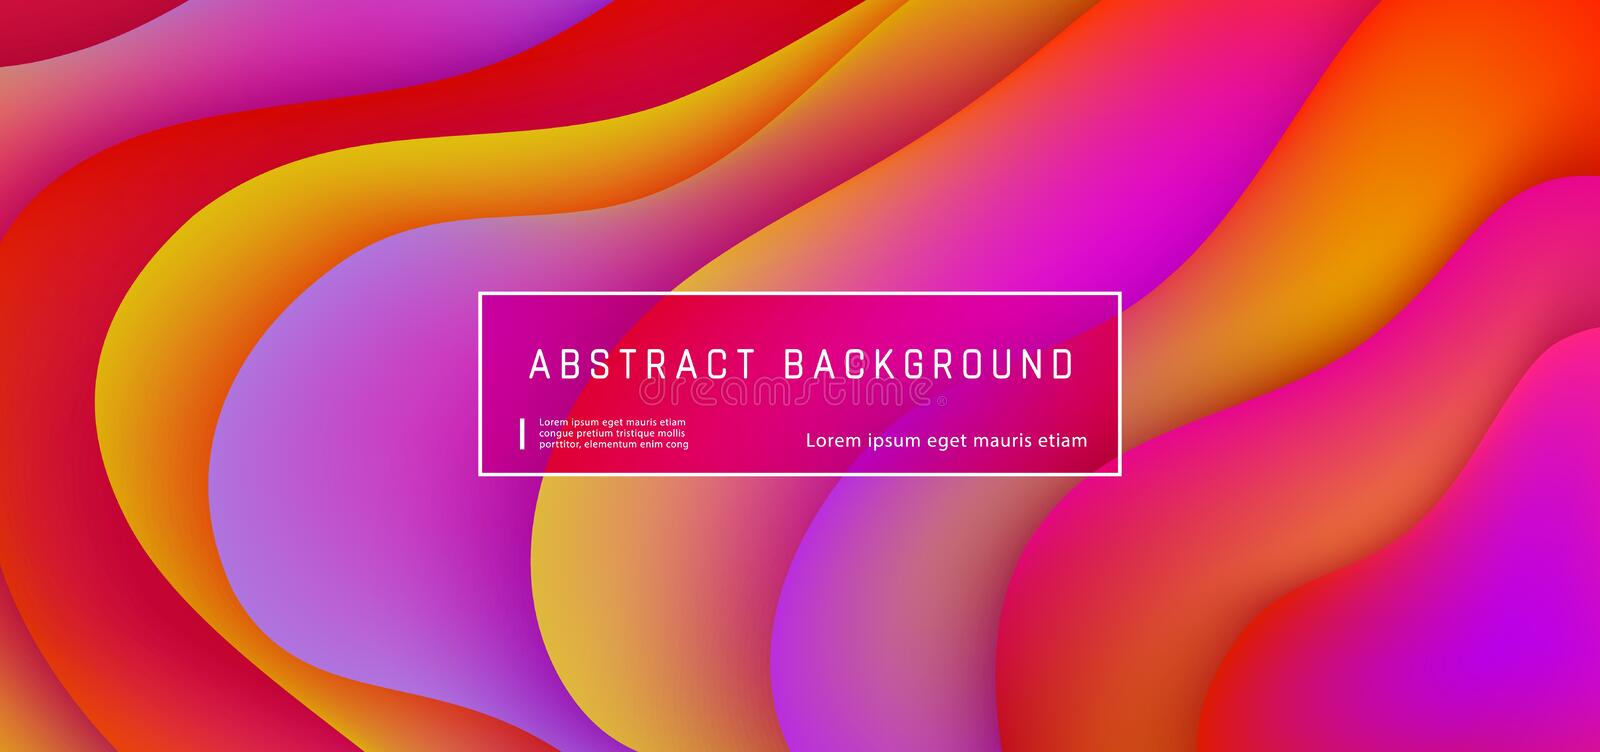 Abstract background with purple, yellow, red wave and liquid shapes composition. Gradient fluid abstract background template, vector illustration. Design royalty free illustration